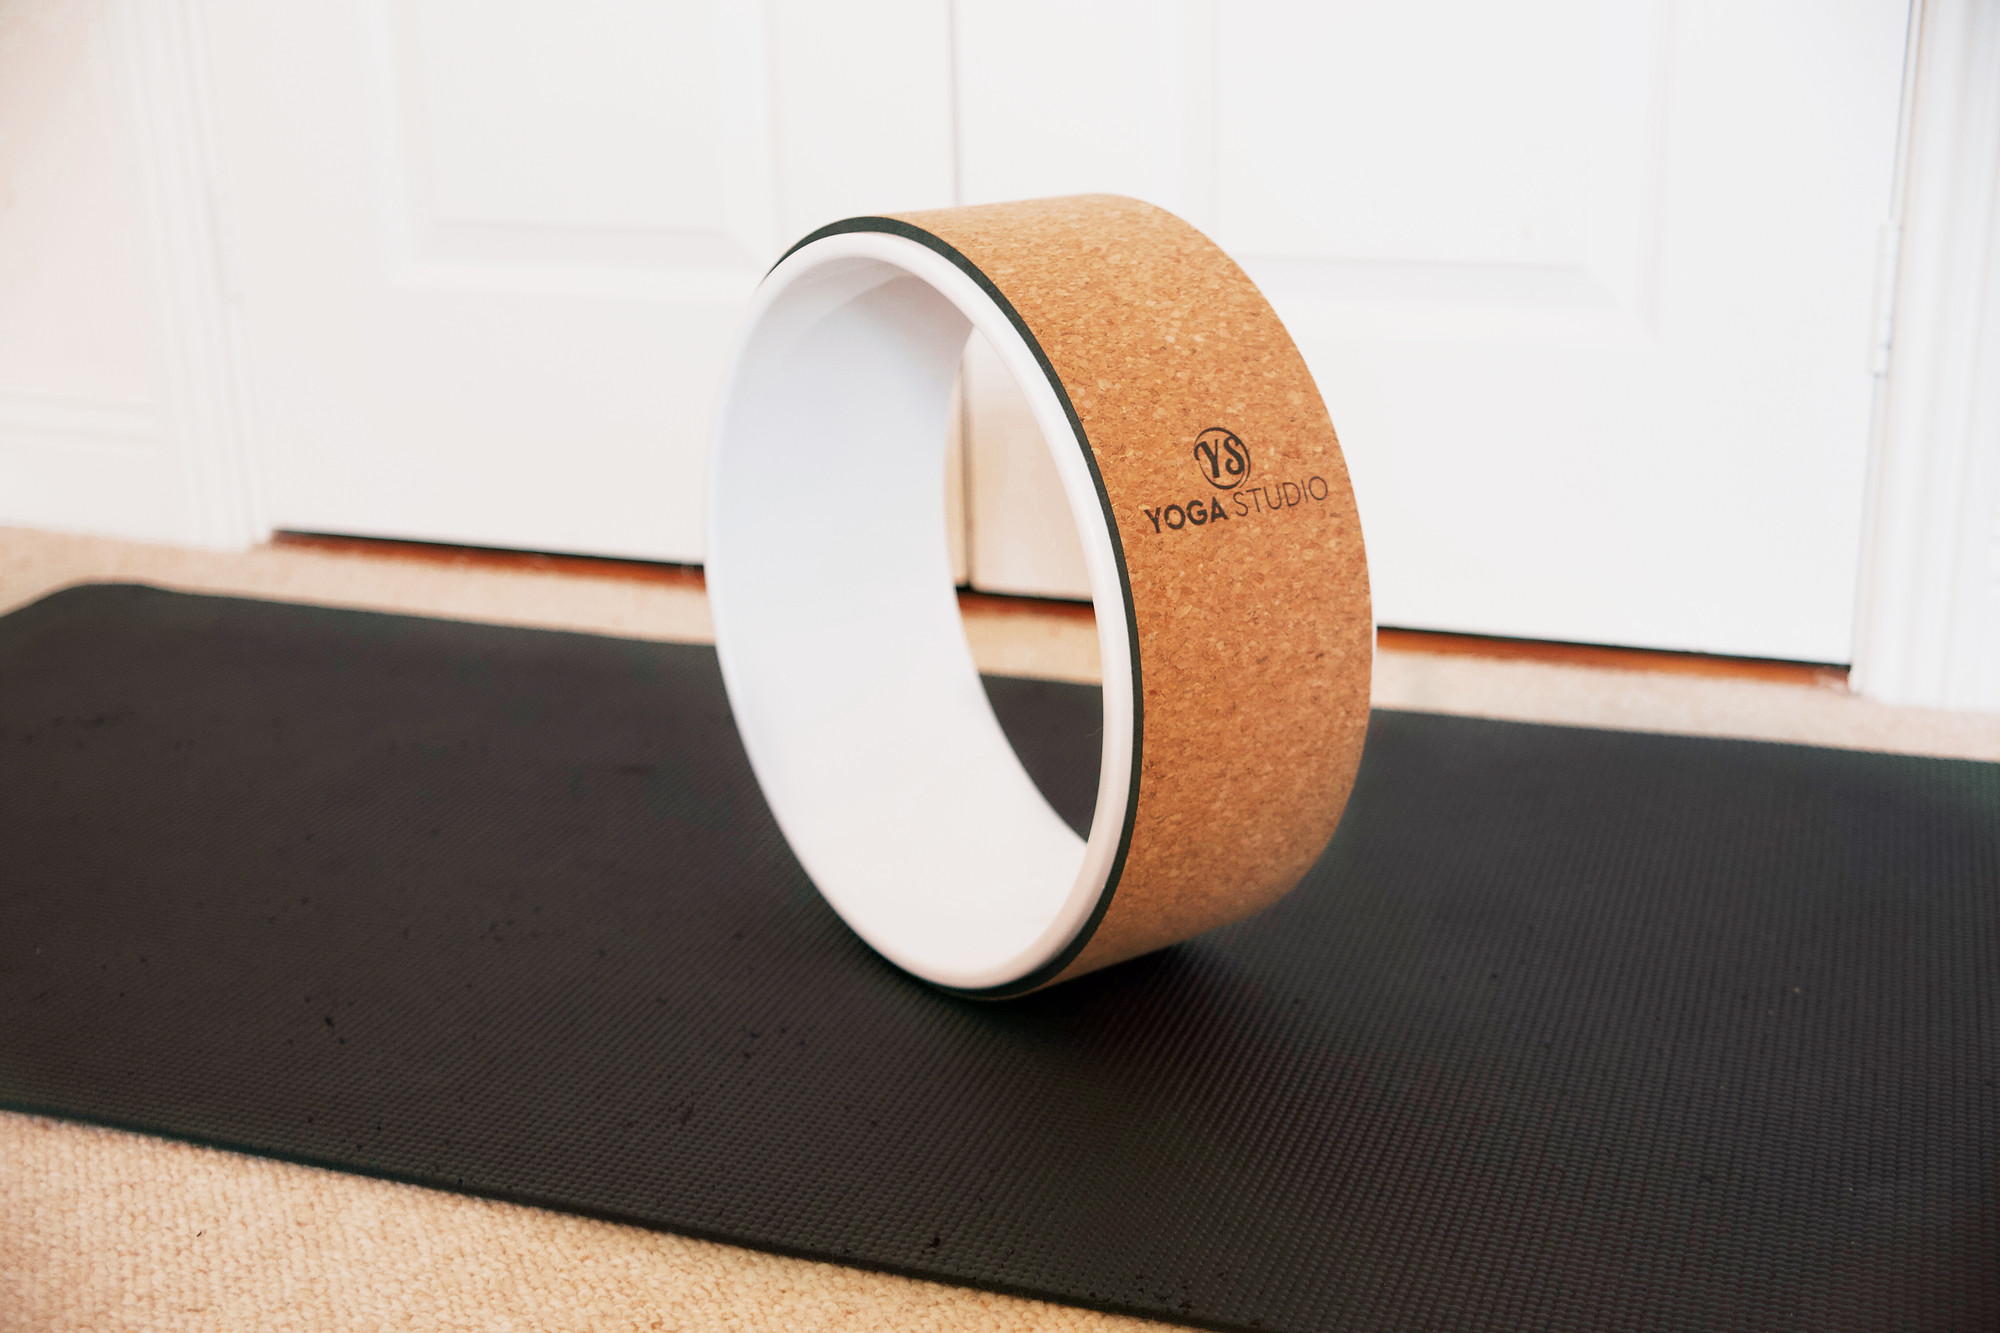 What Are The Benefits Of Using A Yoga Wheel